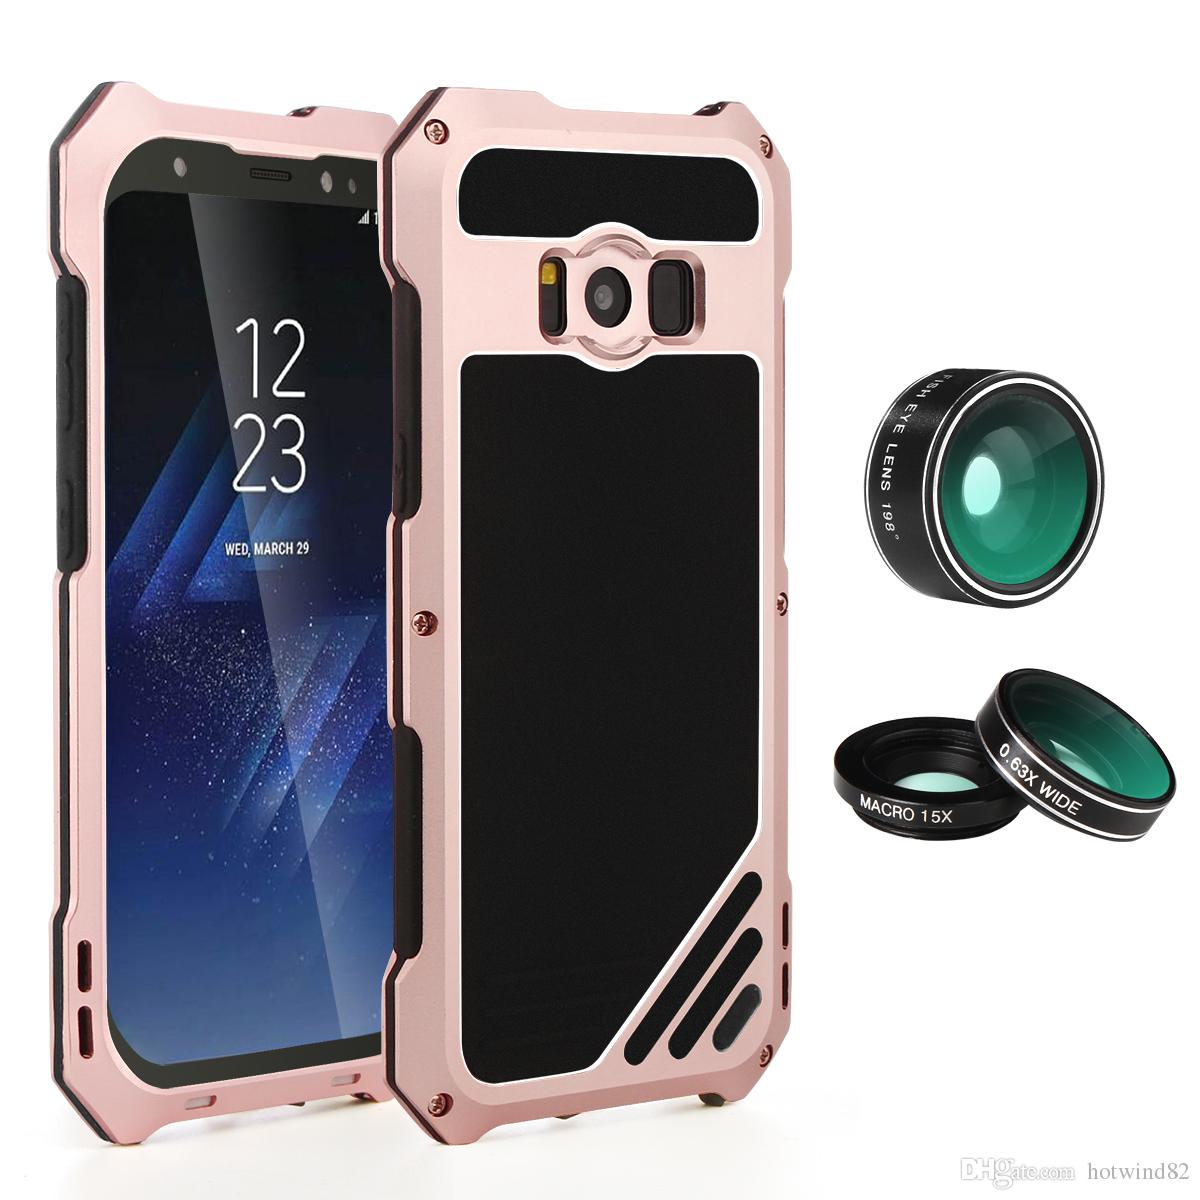 buy online cdea2 53562 For Samsung Galaxy S8 Plus Lens Kit Case with IP54 Dustproof Shockproof  Rose Gold Aluminum Case for Galaxy S8 Plus (6.2